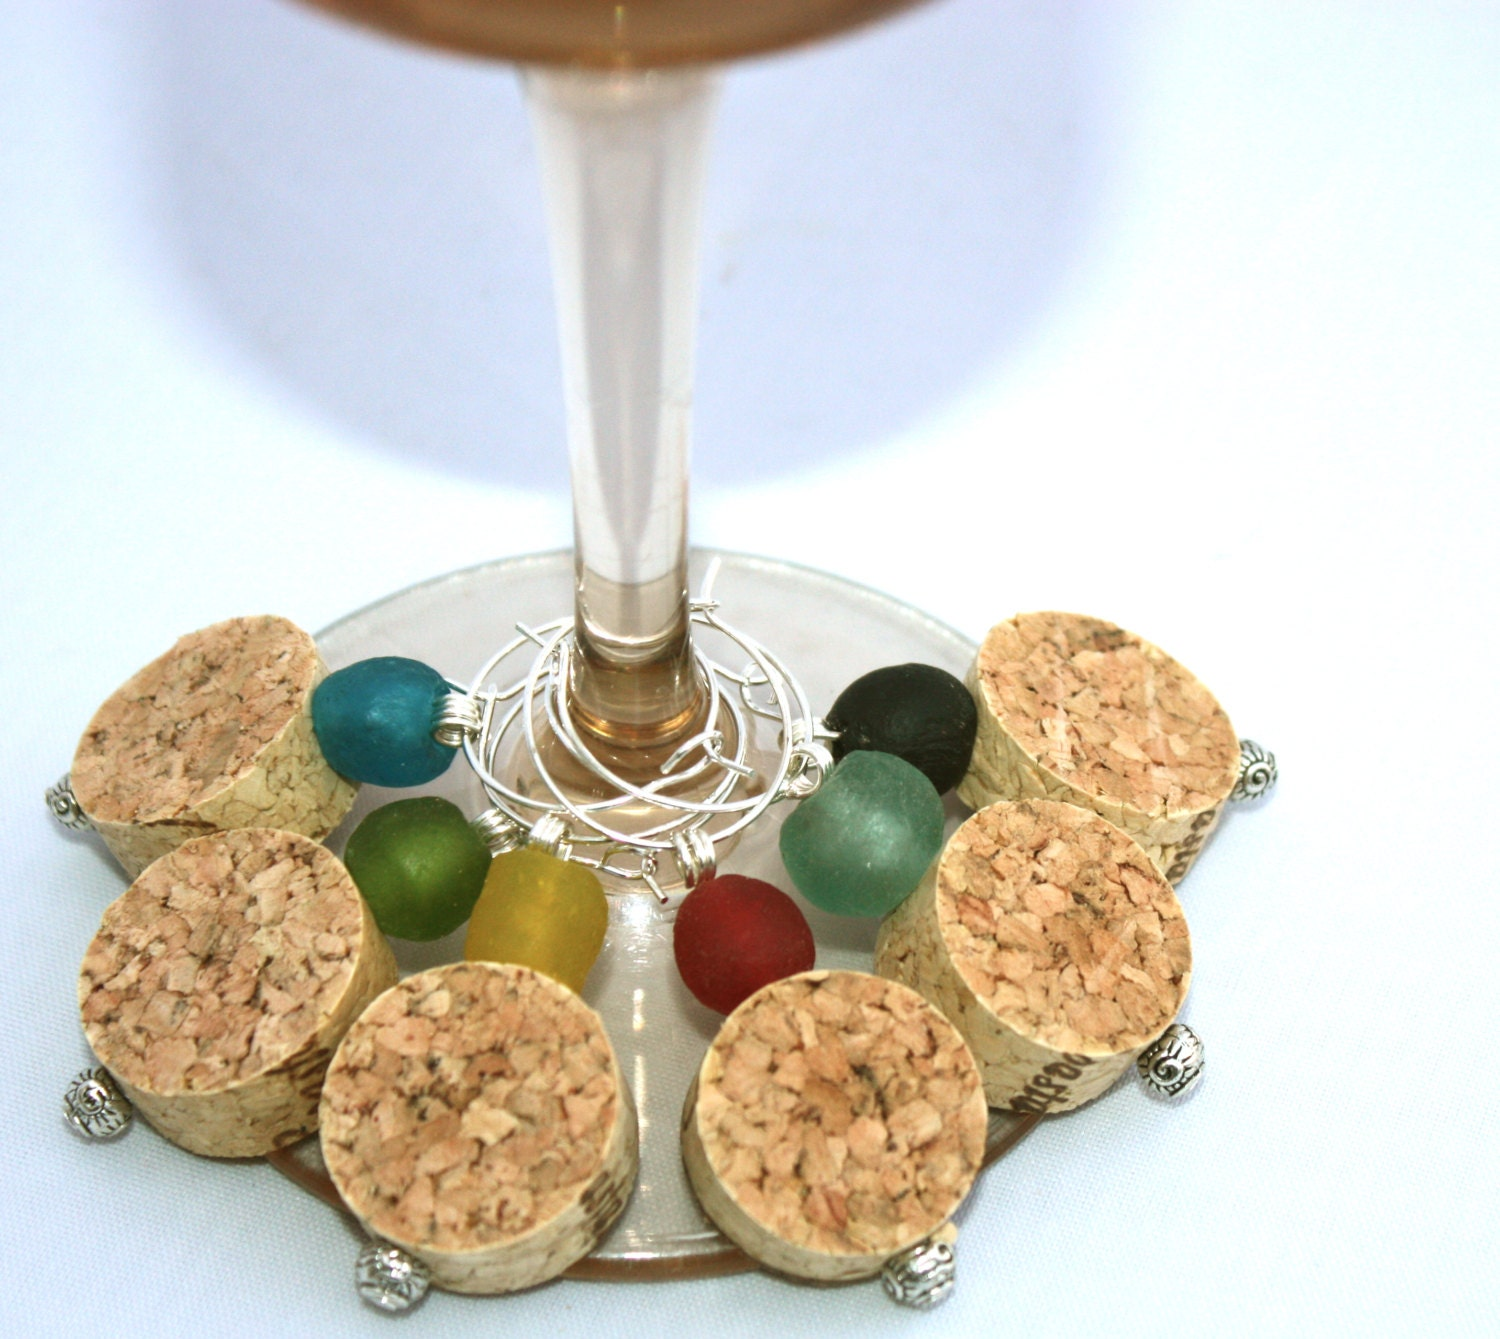 Cork Beads: Cork Wine Charms With Recycled Glass Beads In Multi-Colors